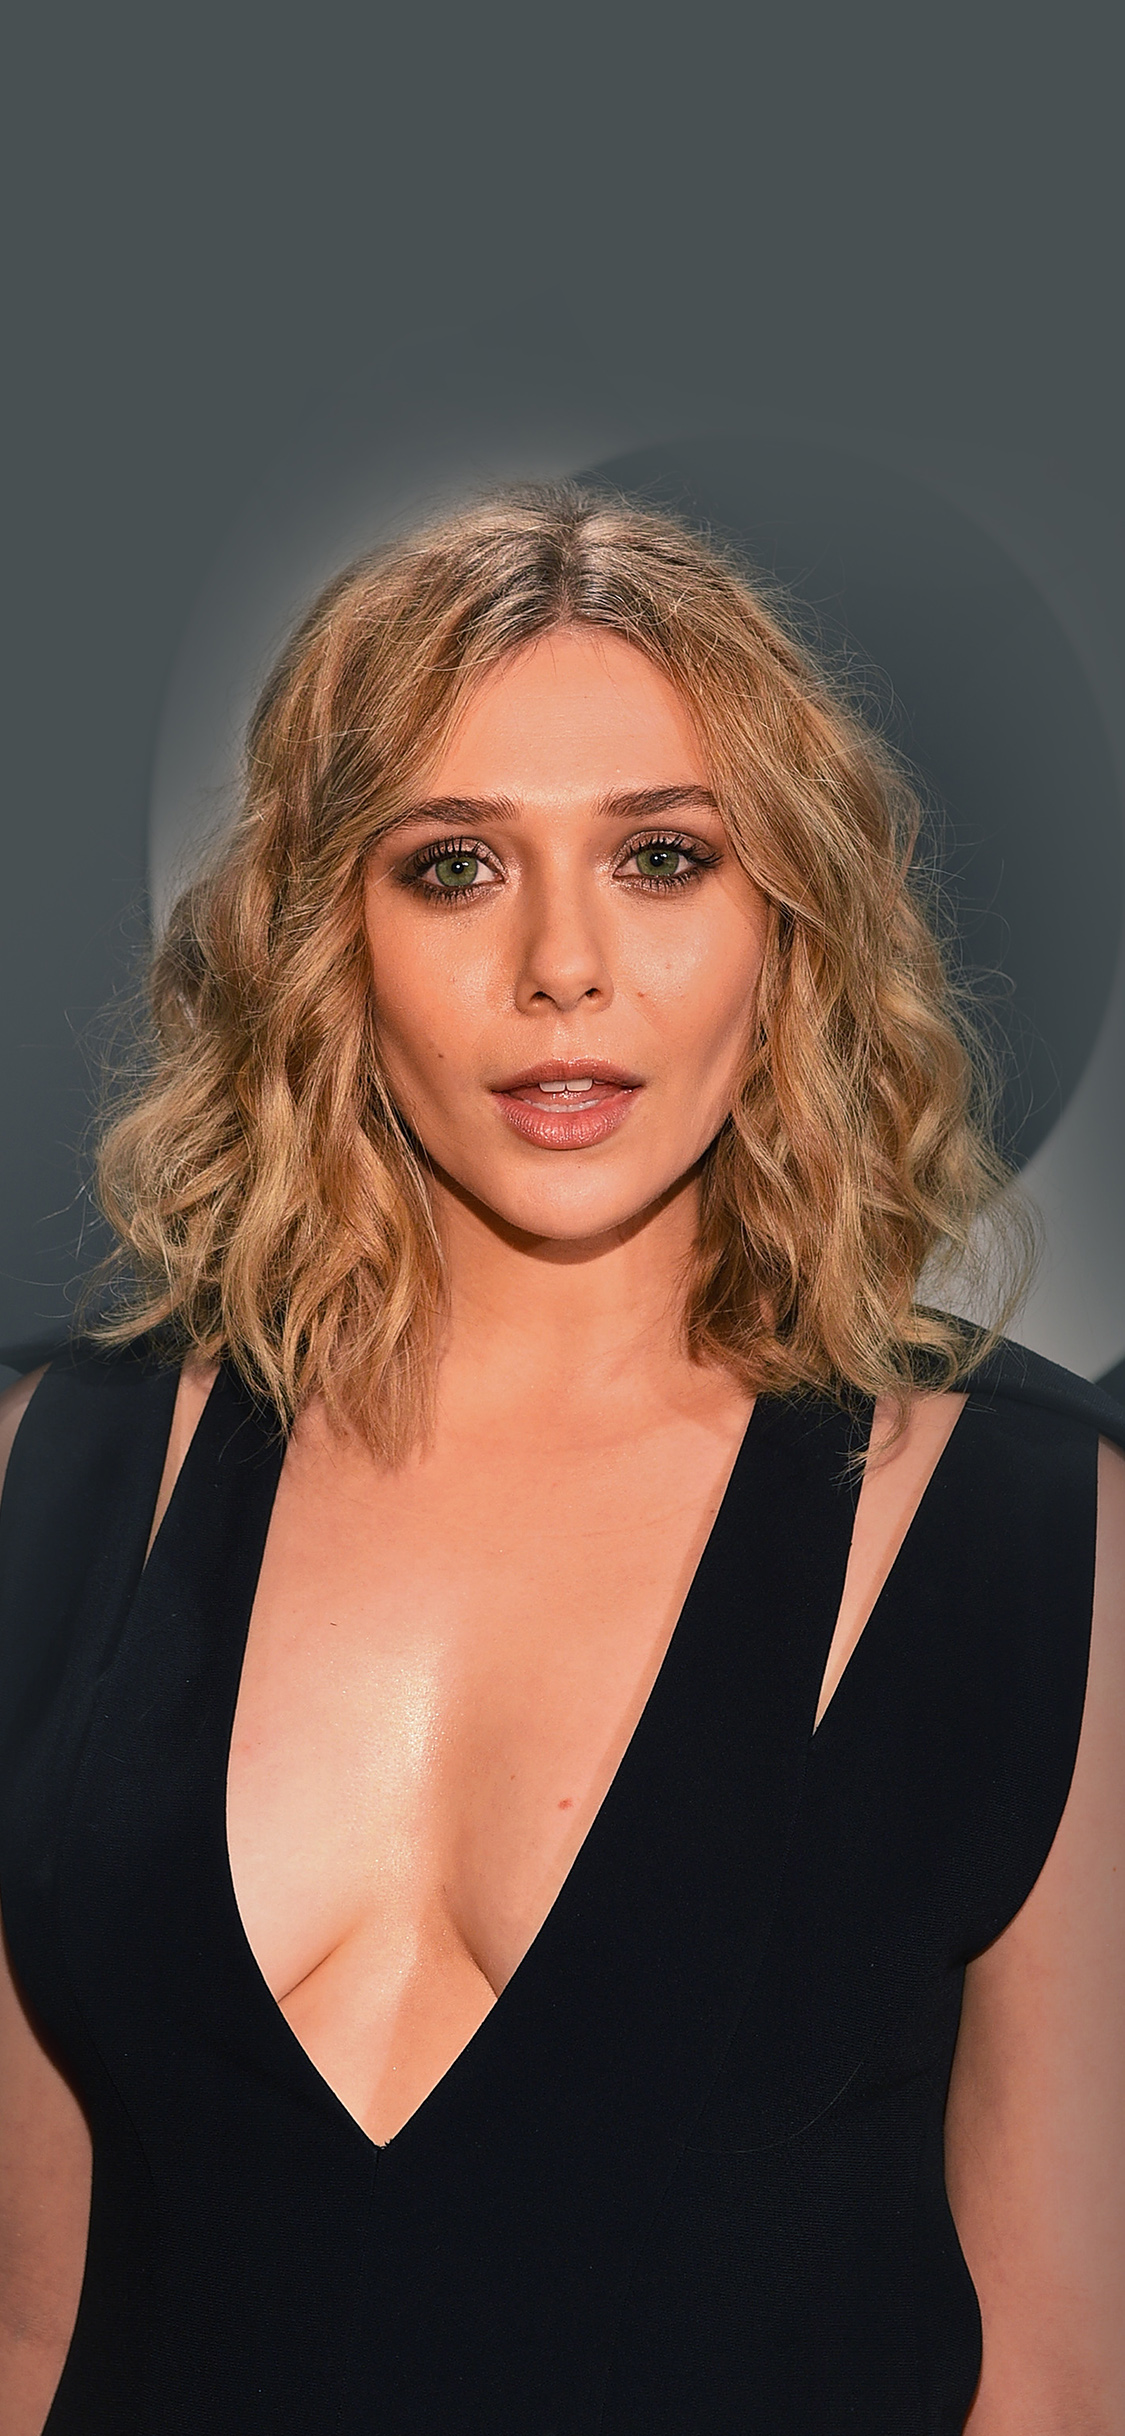 iPhoneXpapers.com-Apple-iPhone-wallpaper-hf40-elizabeth-olsen-avengers-scarlett-witch-hero